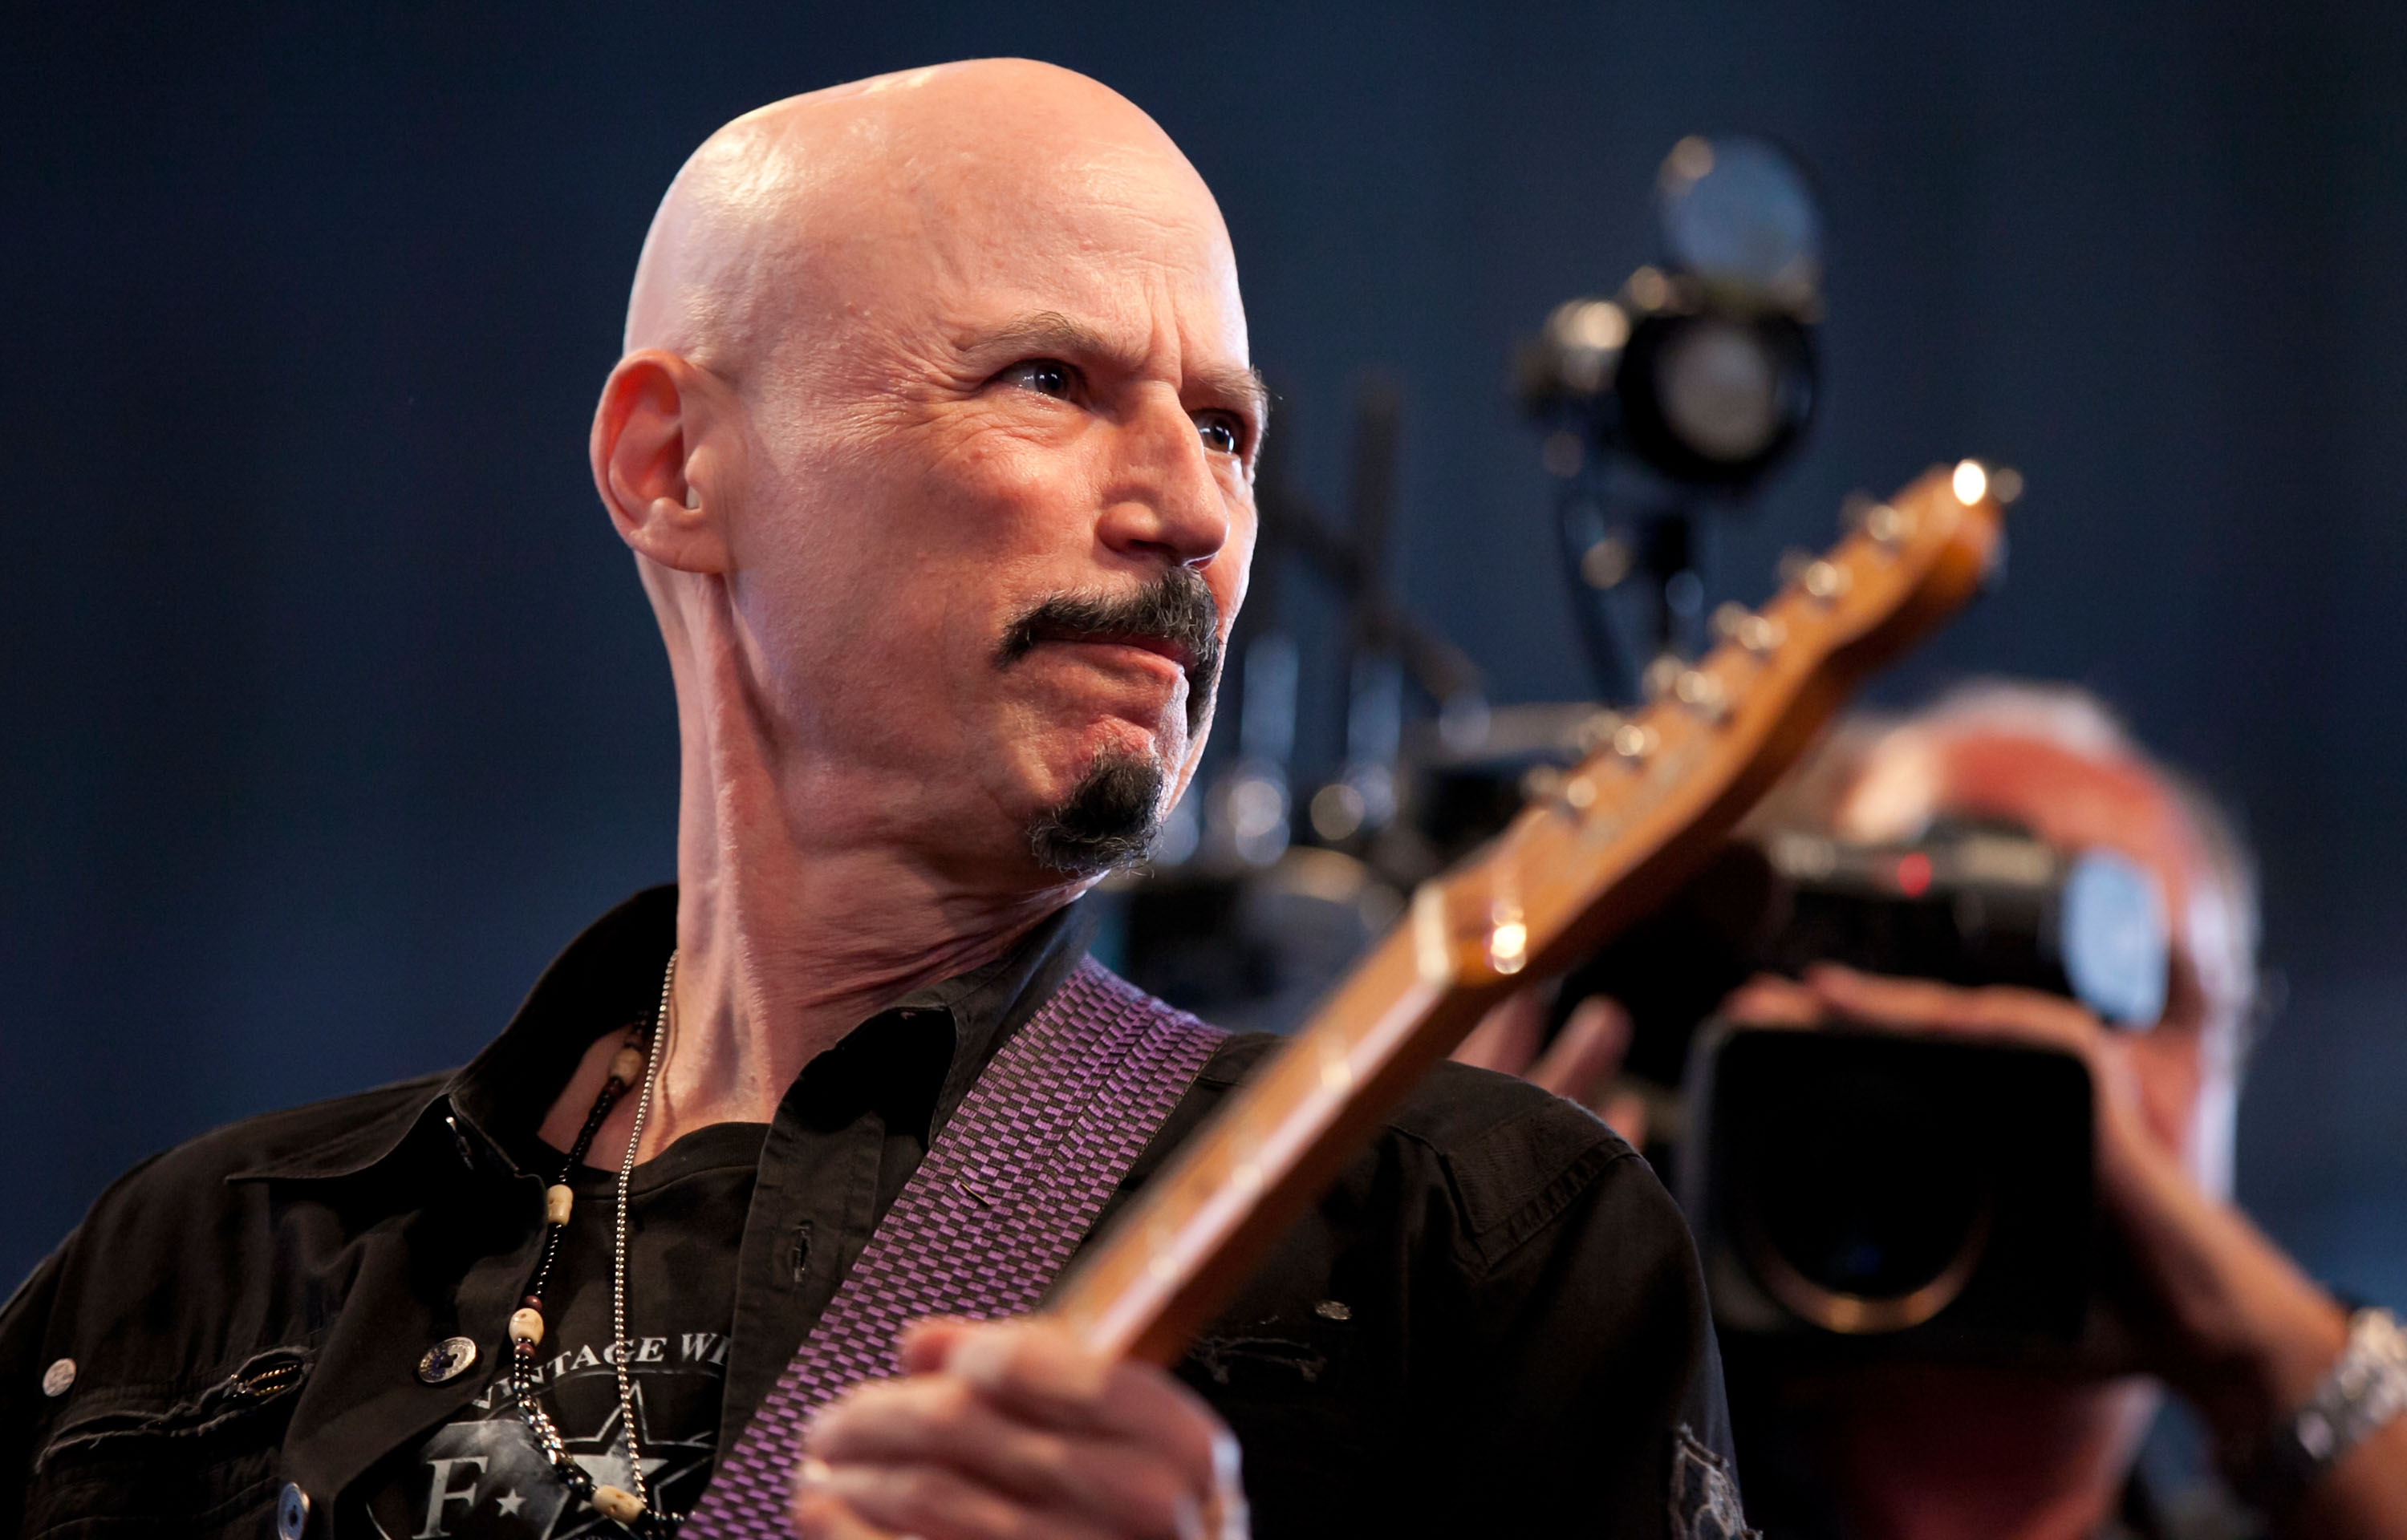 Guitarist Bob Kulick passes away at 70